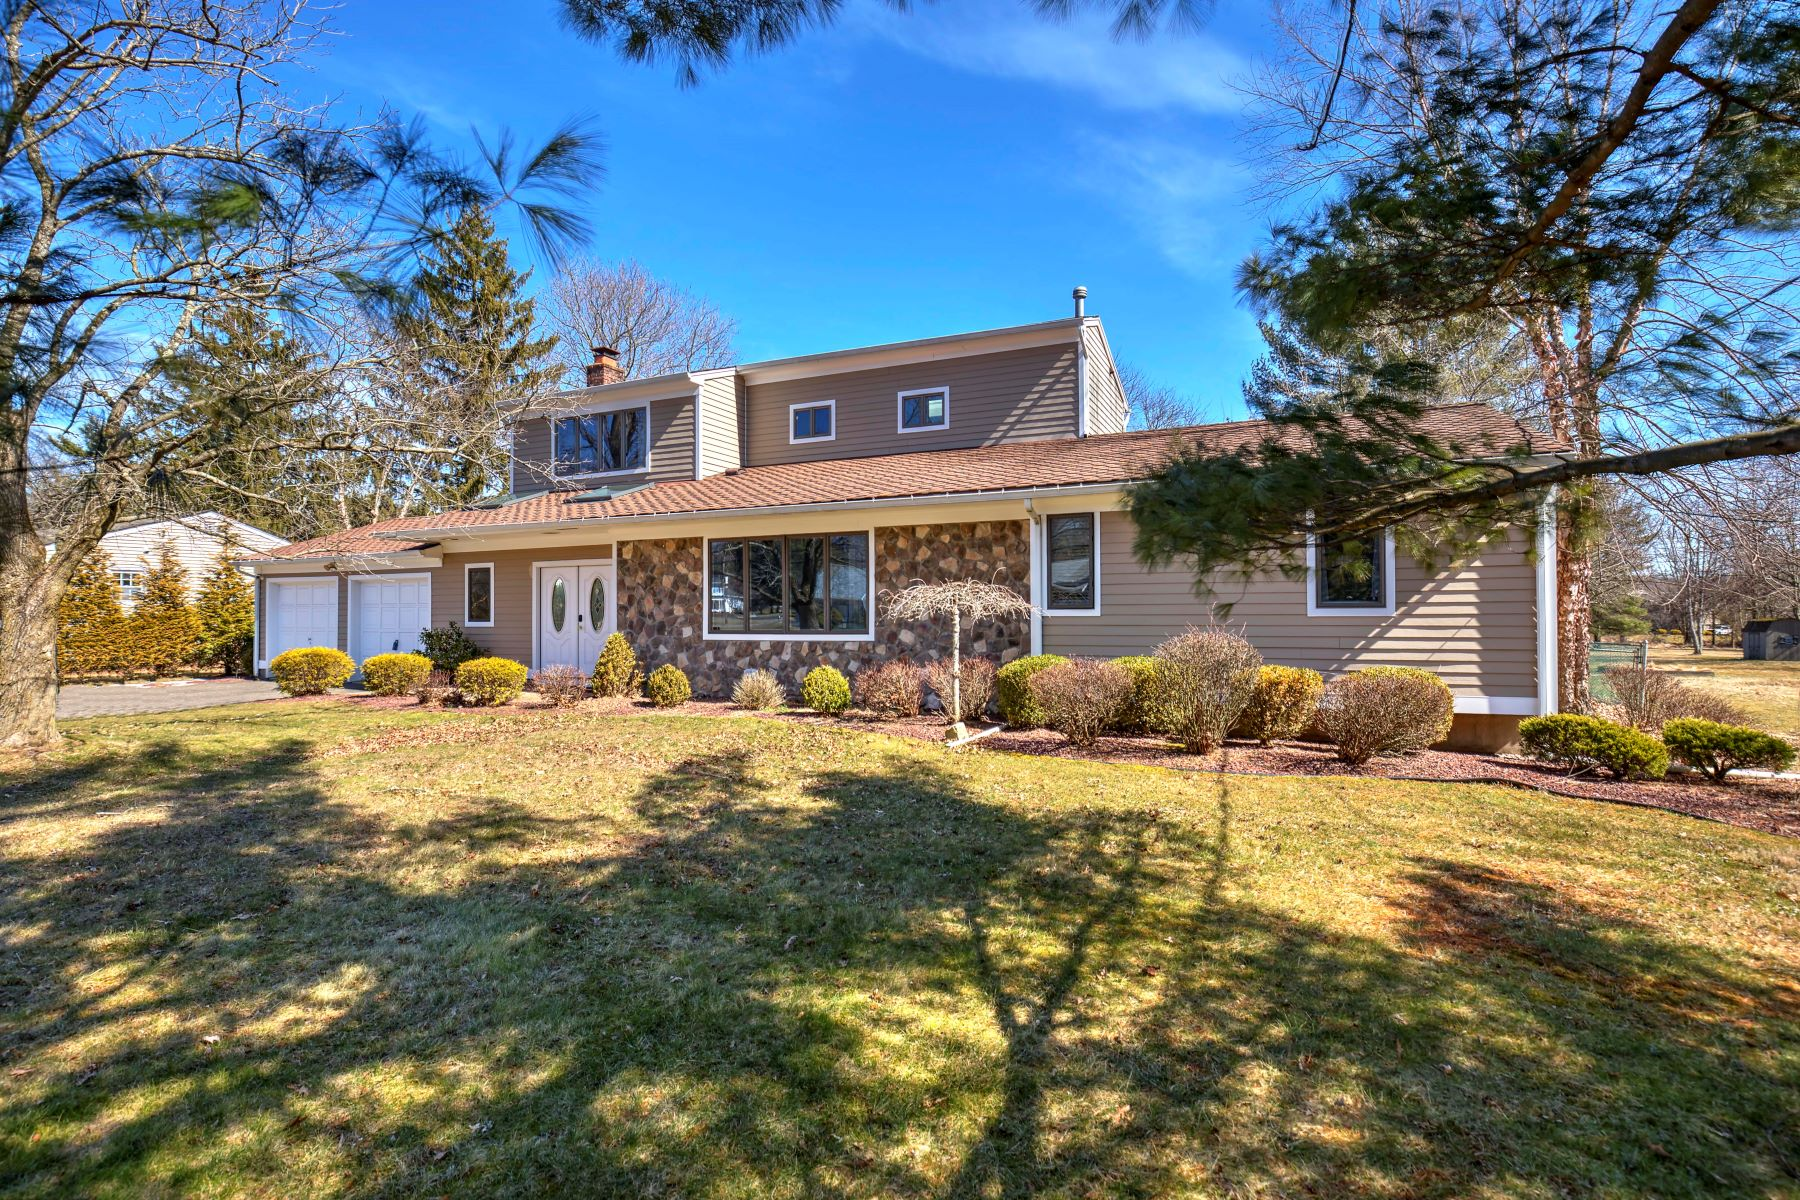 Single Family Homes for Sale at Custom Raised Ranch 1006 Papen Road Bridgewater, New Jersey 08807 United States